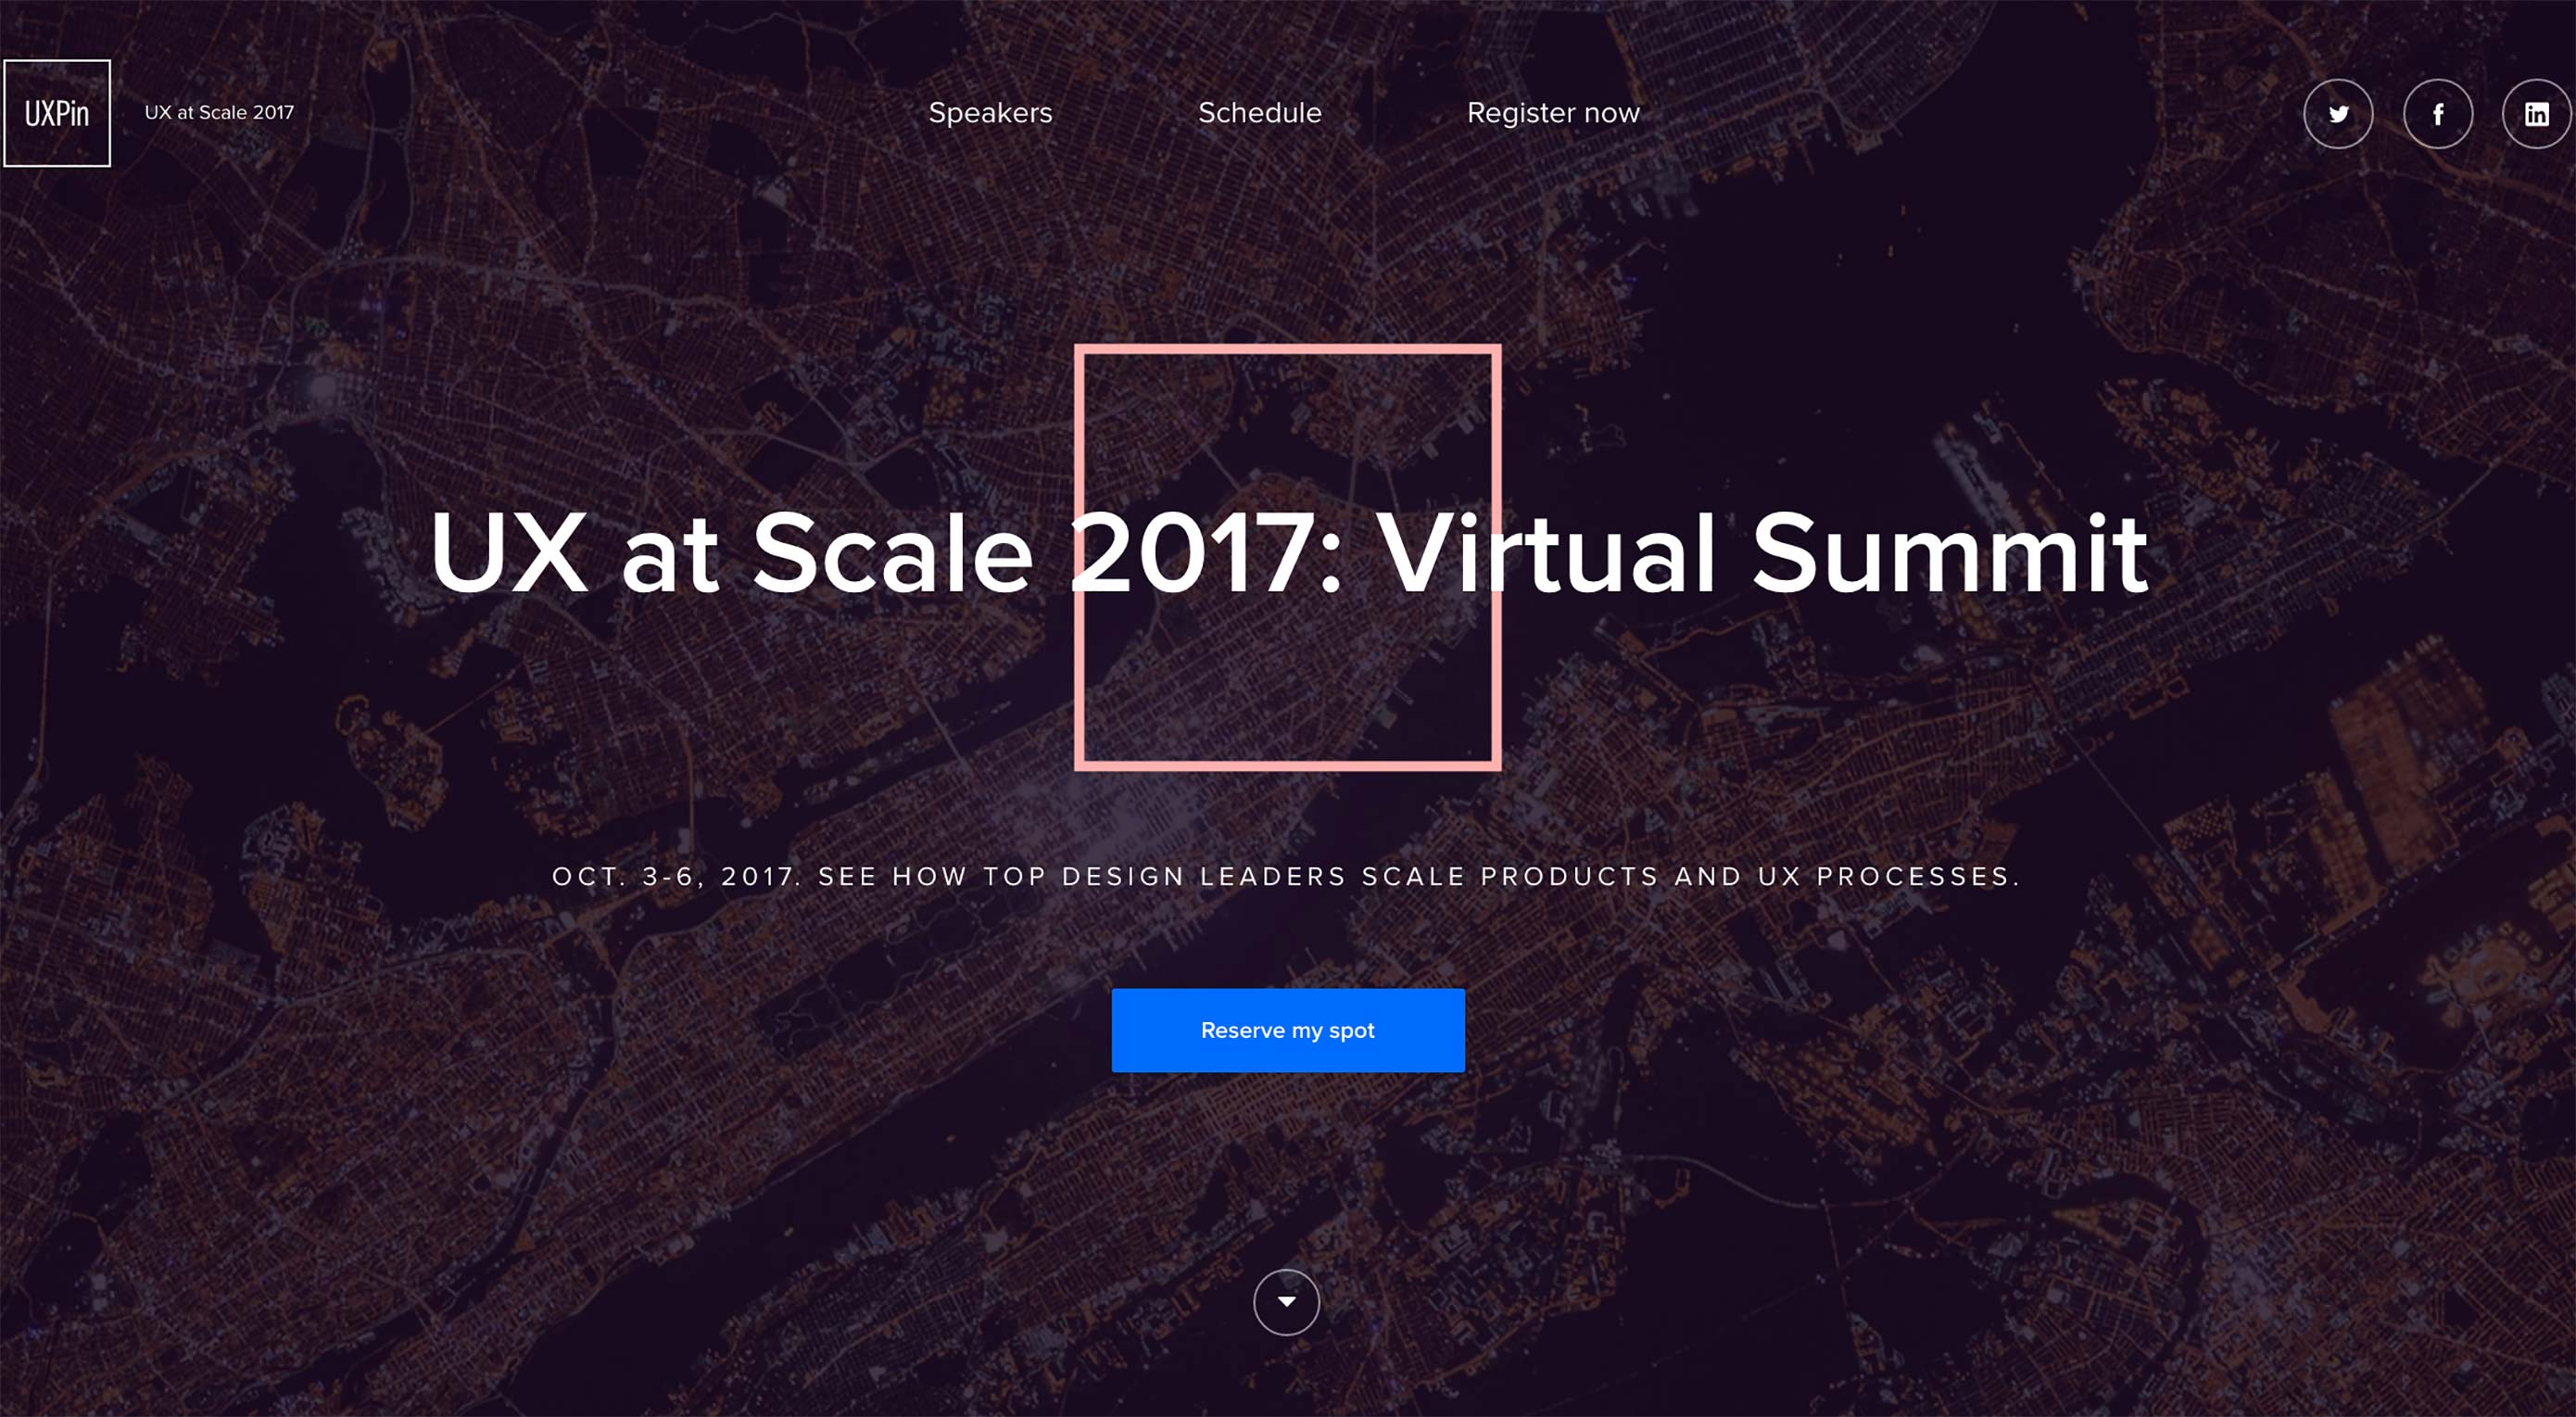 UX at Scale 2017: Free online conference with 20,000+ registrants